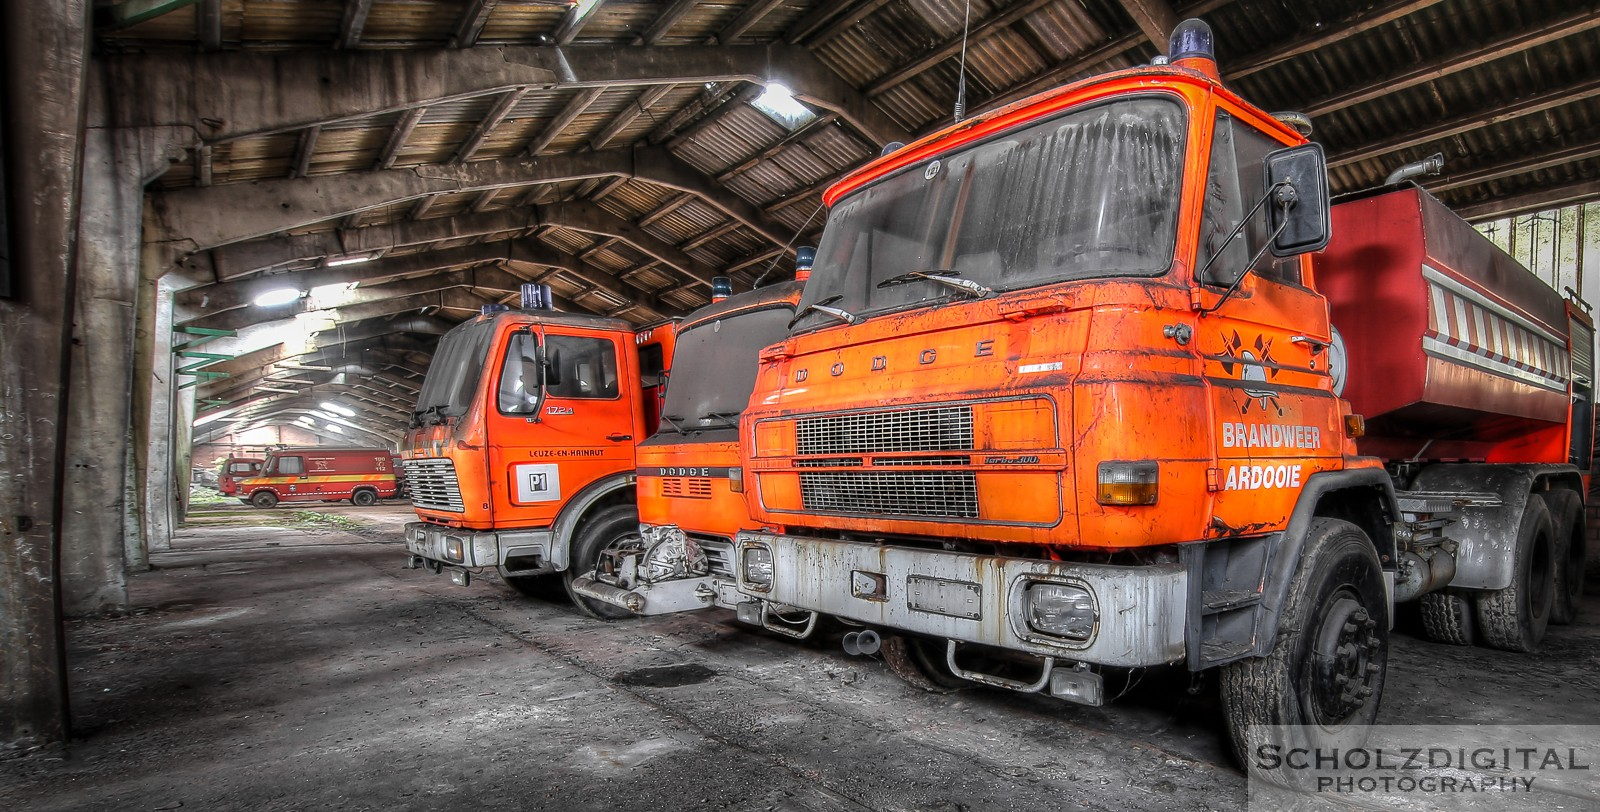 Abandoned, Feuerwehr, Fire Figther Trucks, HDR, Lost Place, UE, Urban exploration, Urbex, verlassen, Verlassene Orte, Verlassene Orte in Belgien, verlaten